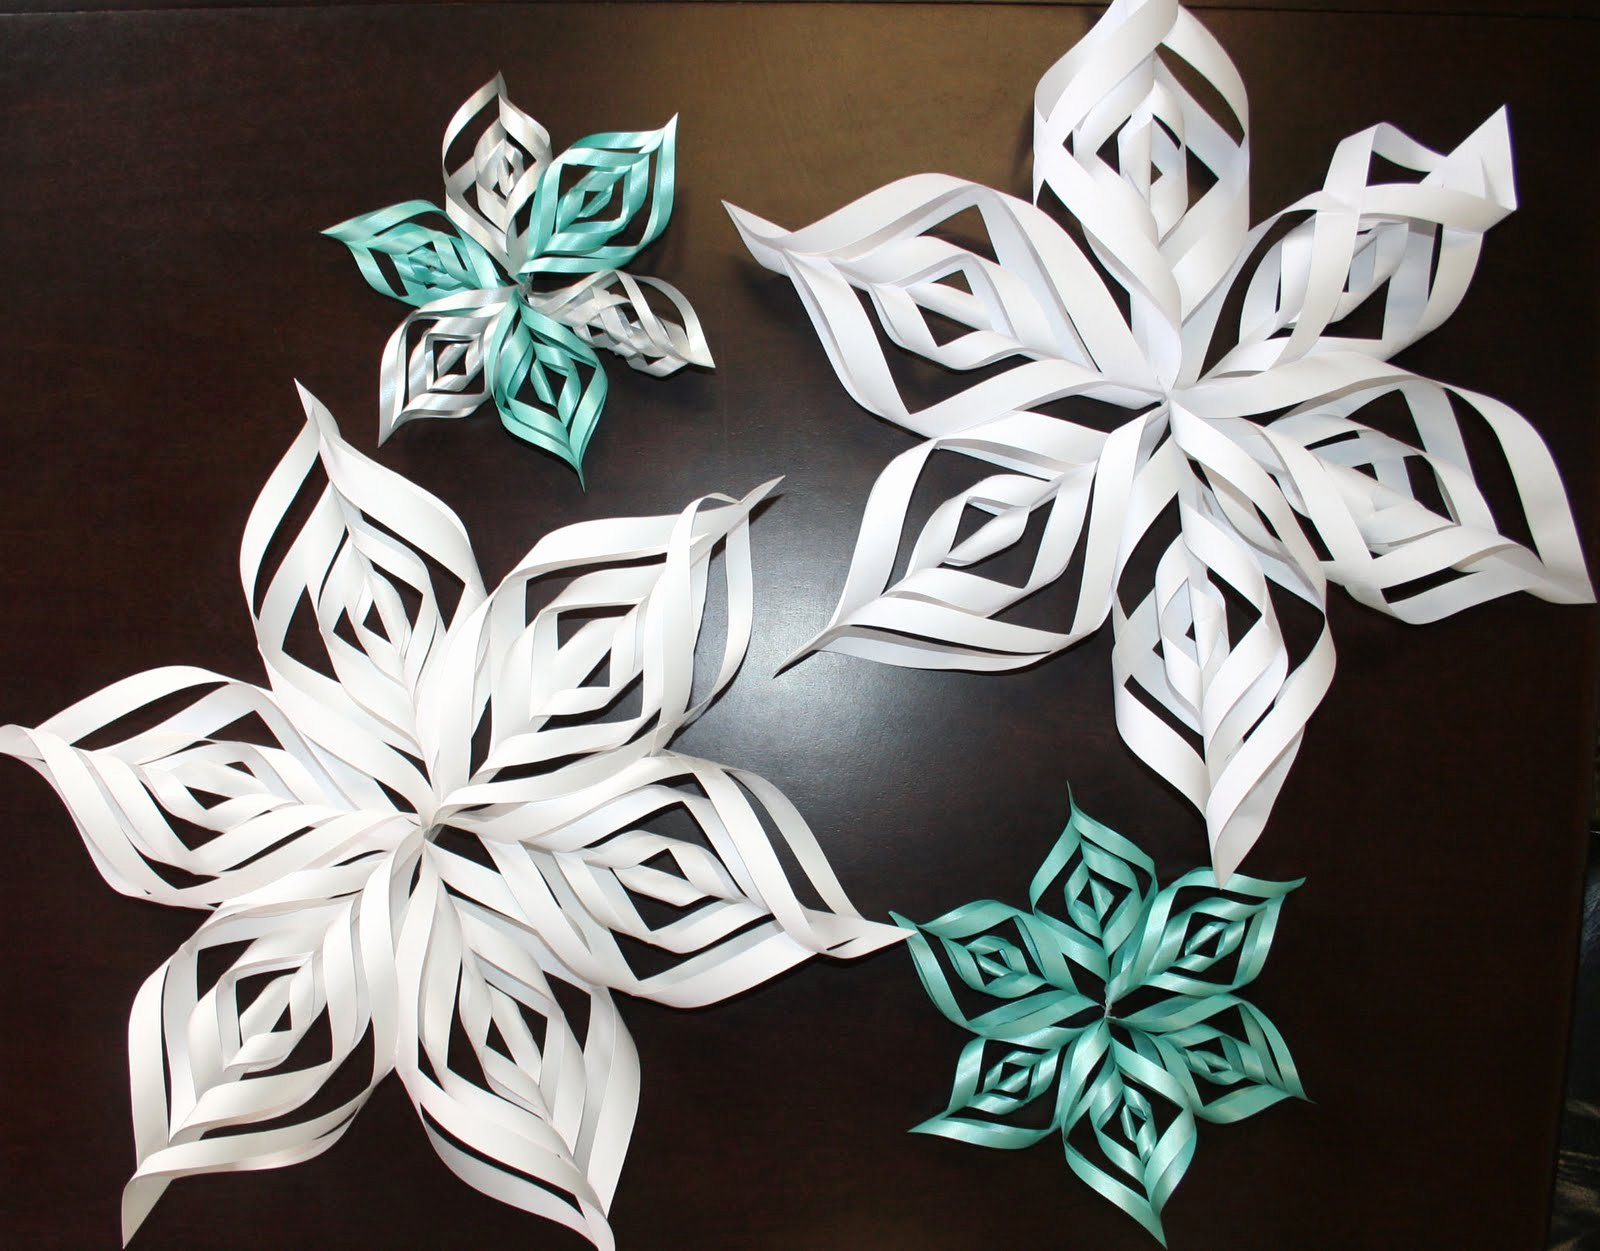 How to Make 3d Snowflakes Fresh Paper Zone Inspiresigneate 3d Snowflake Pattern